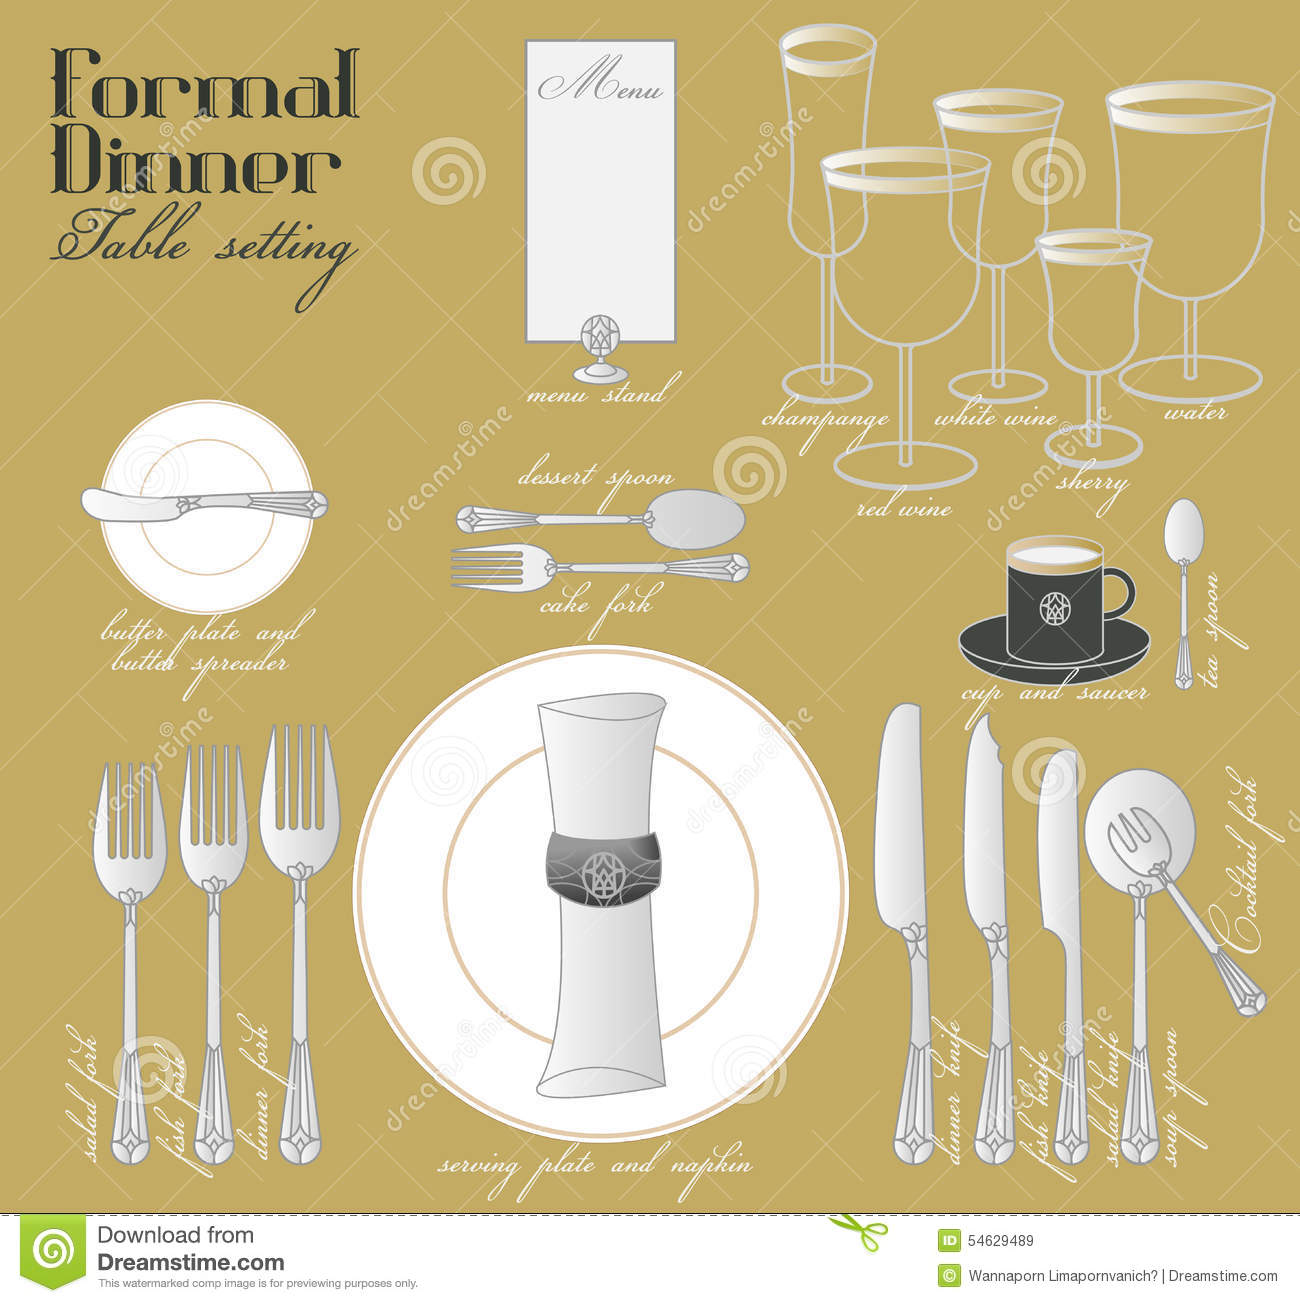 FORMAL DINNER TABLE SETTING Stock Photo Image 54629489 : formal dinner table setting dining elegant decoration glamour style arrange full course n 54629489 from www.dreamstime.com size 1300 x 1303 jpeg 171kB